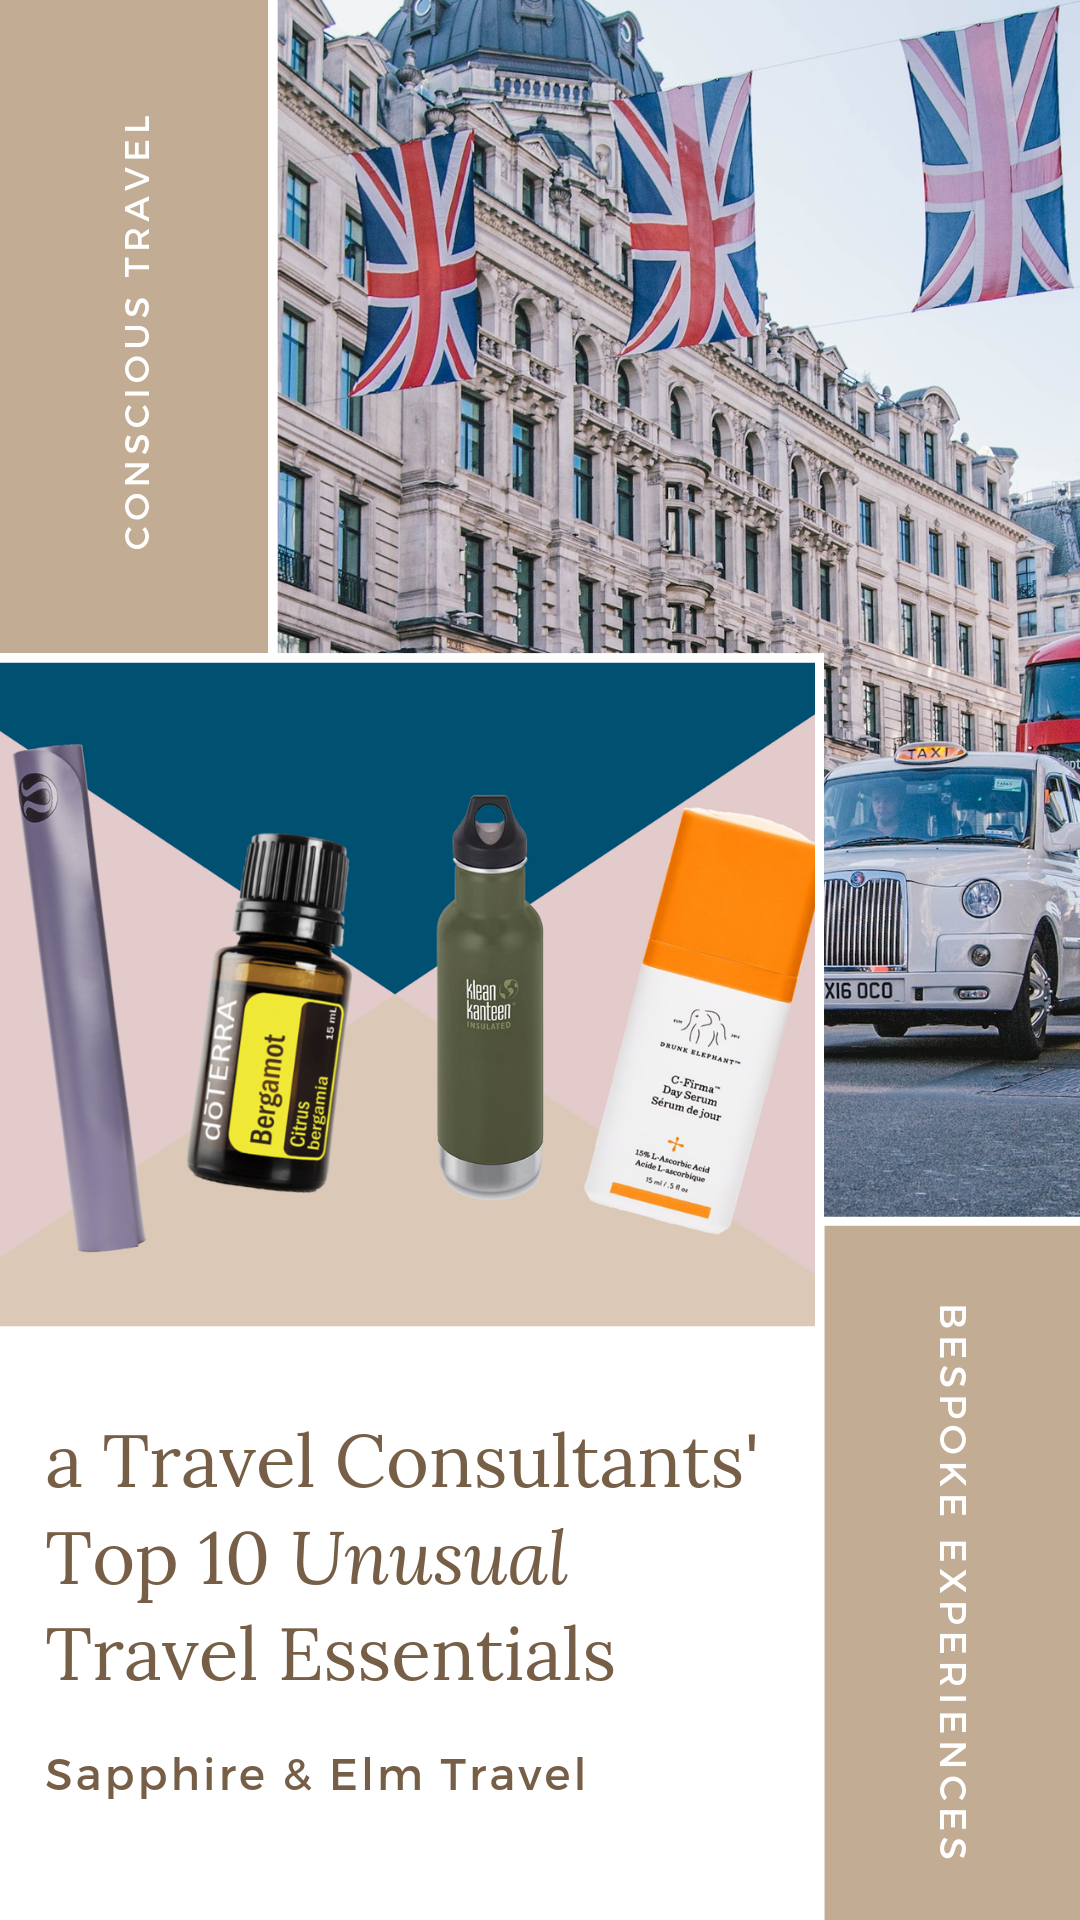 Top 10 Unusual Travel Essentials According to a Travel Consultant | Sapphire & Elm Travel